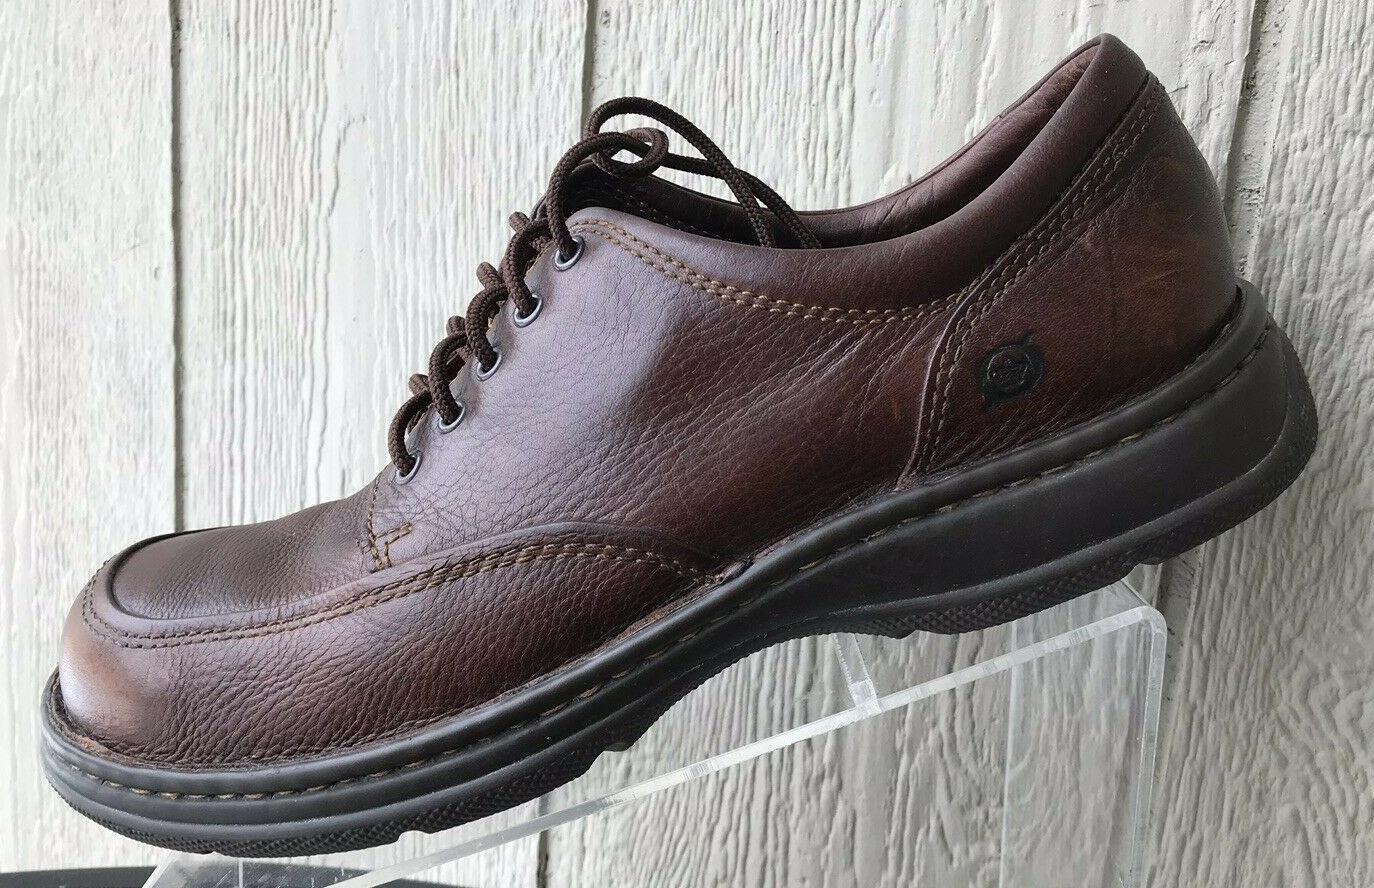 Mens Born Brown Leather Lace Up Oxford shoes Size US 11.5